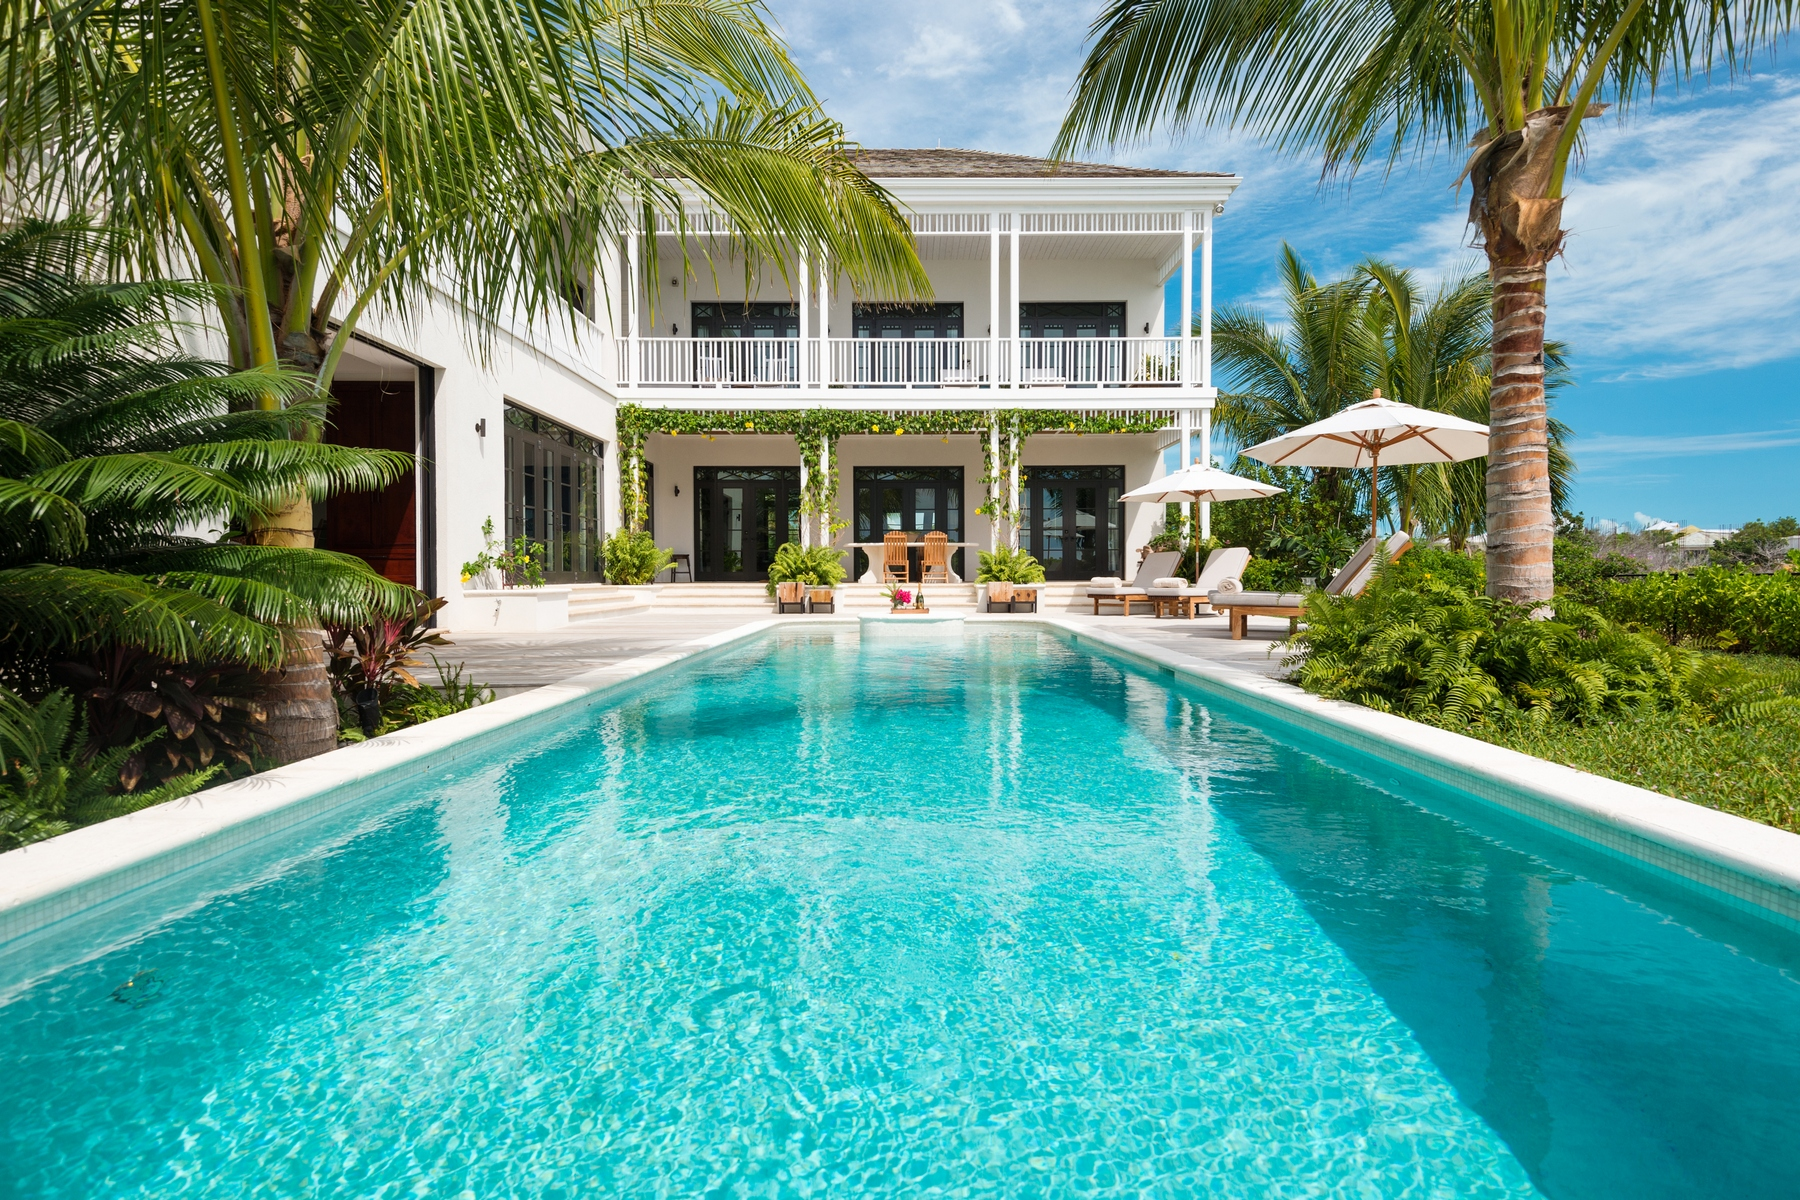 Single Family Home for Rent at Saving Grace Vacation Rental 4 Tranquility Lane Grace Bay, Providenciales TC Turks And Caicos Islands